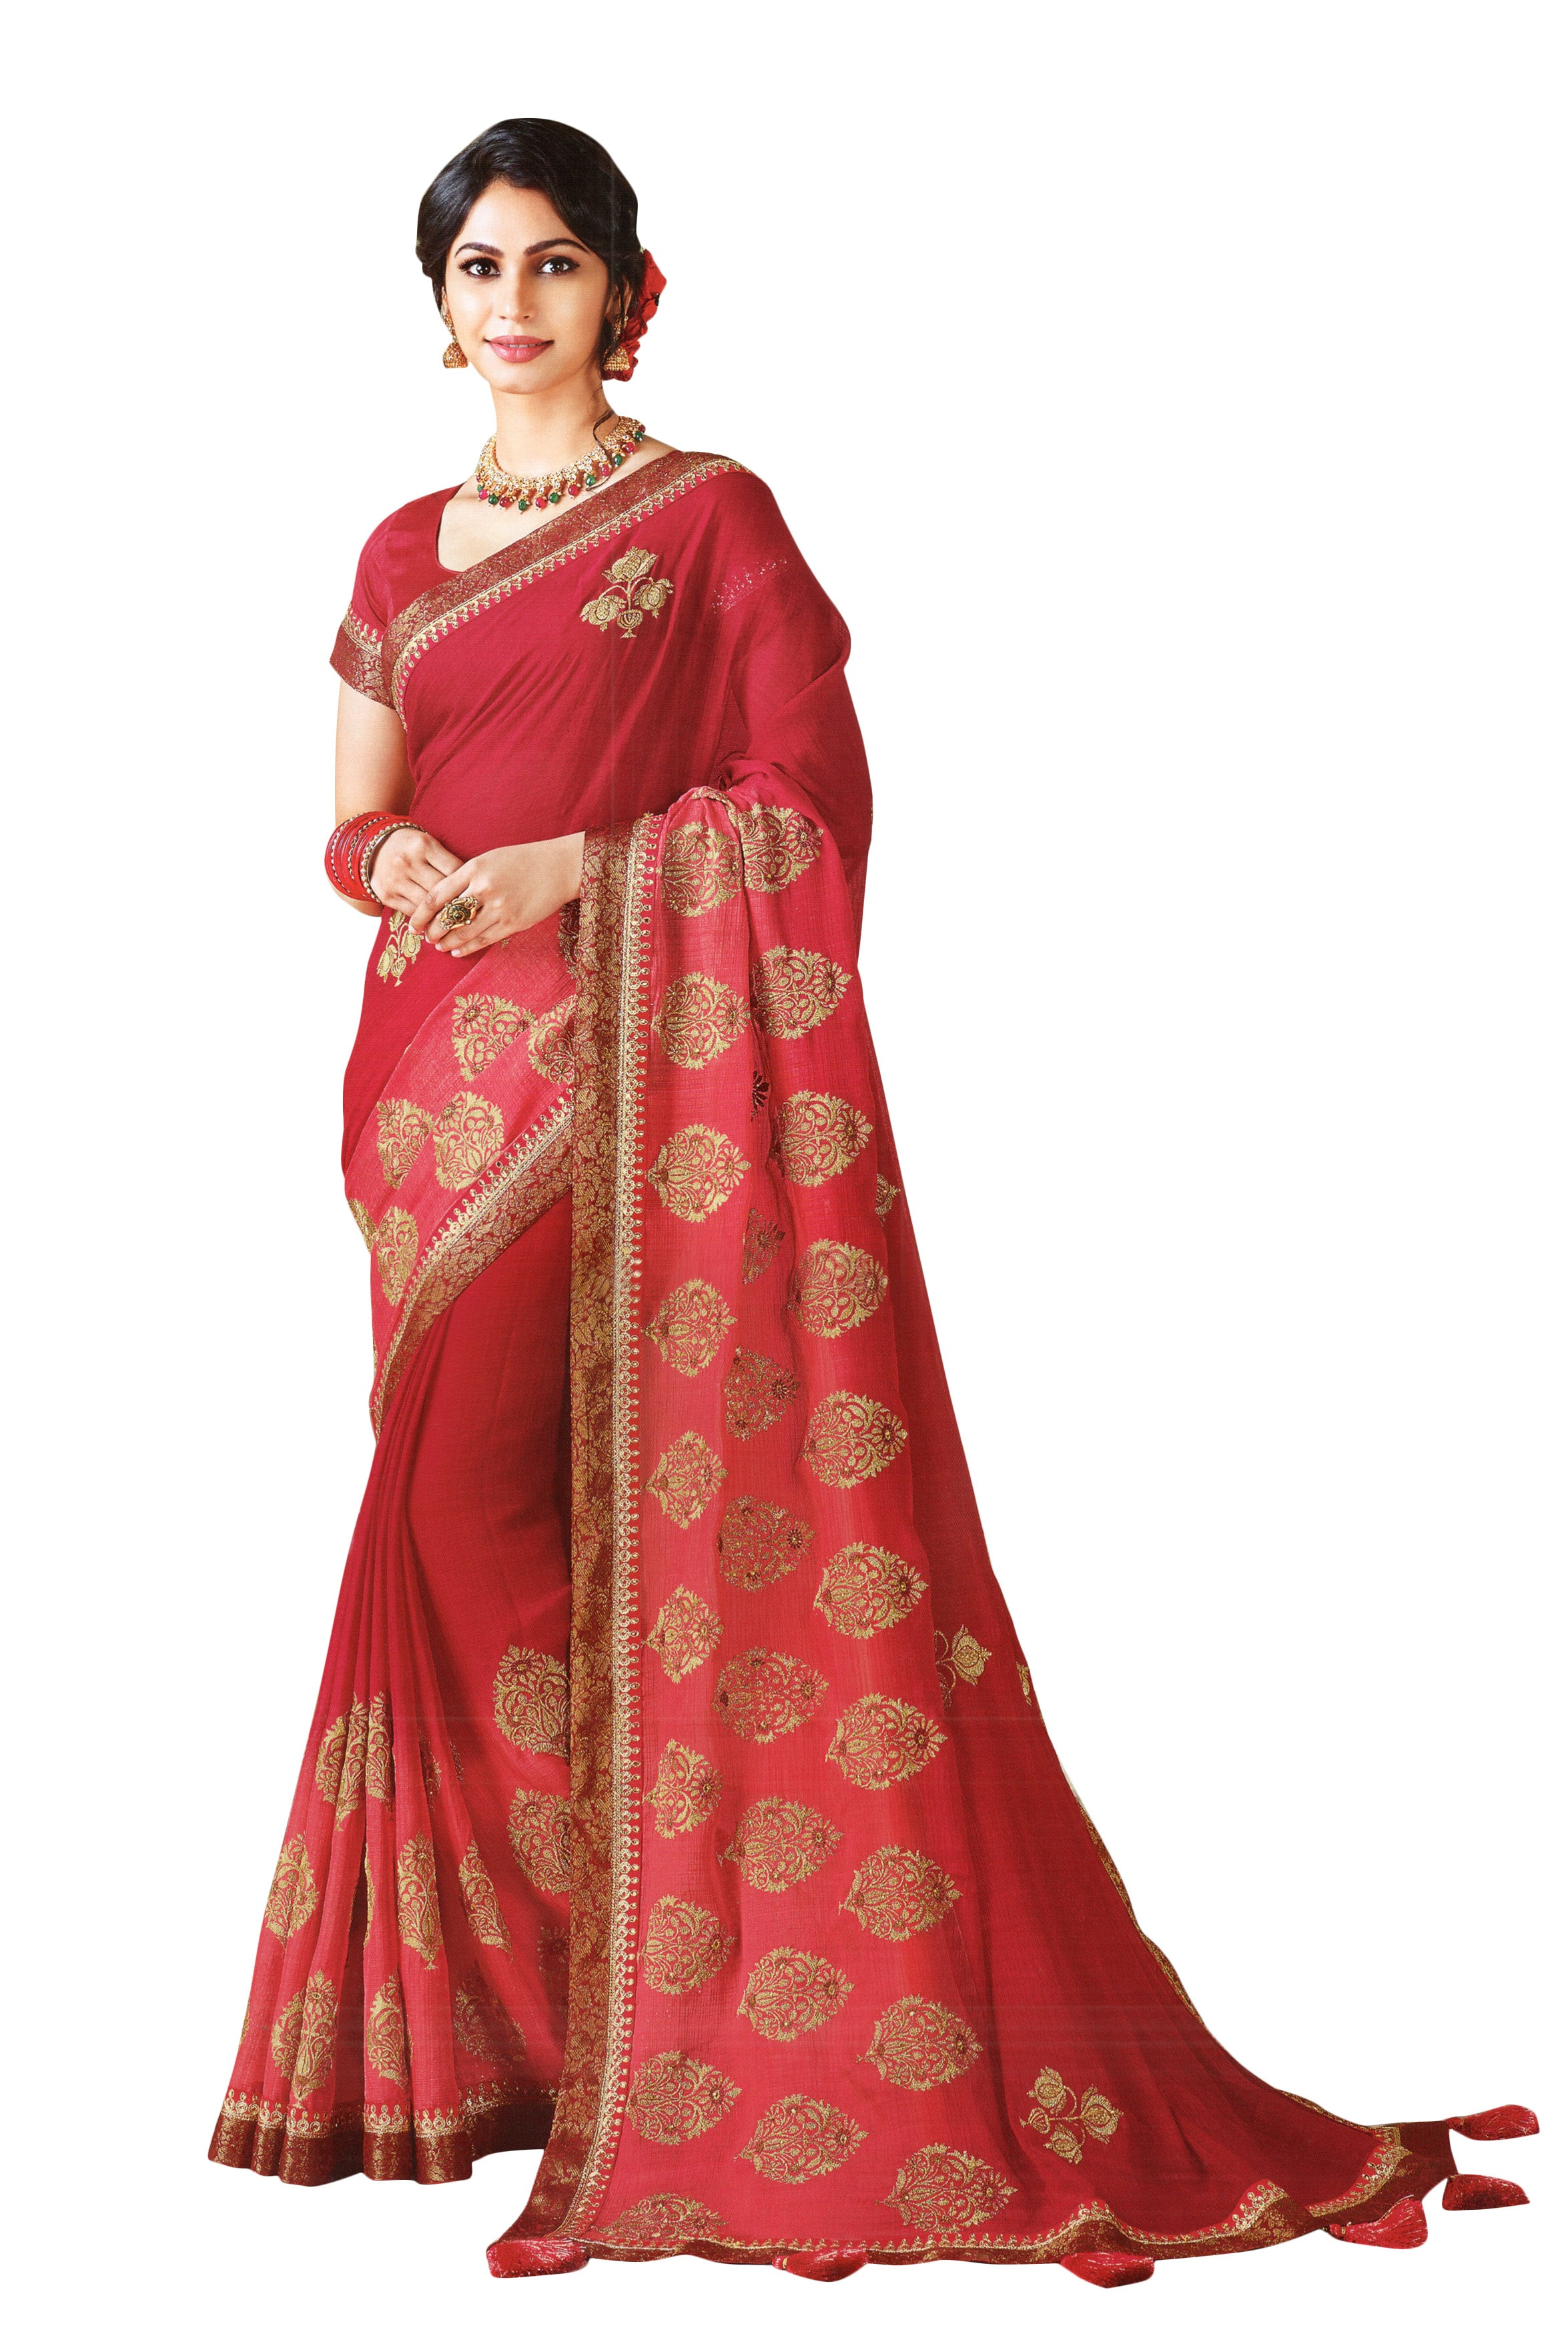 Laxmipati Cham Cham Embroidered  Chiffon  Saree With Blouse Piece  (Maroon) By Indians Boutique